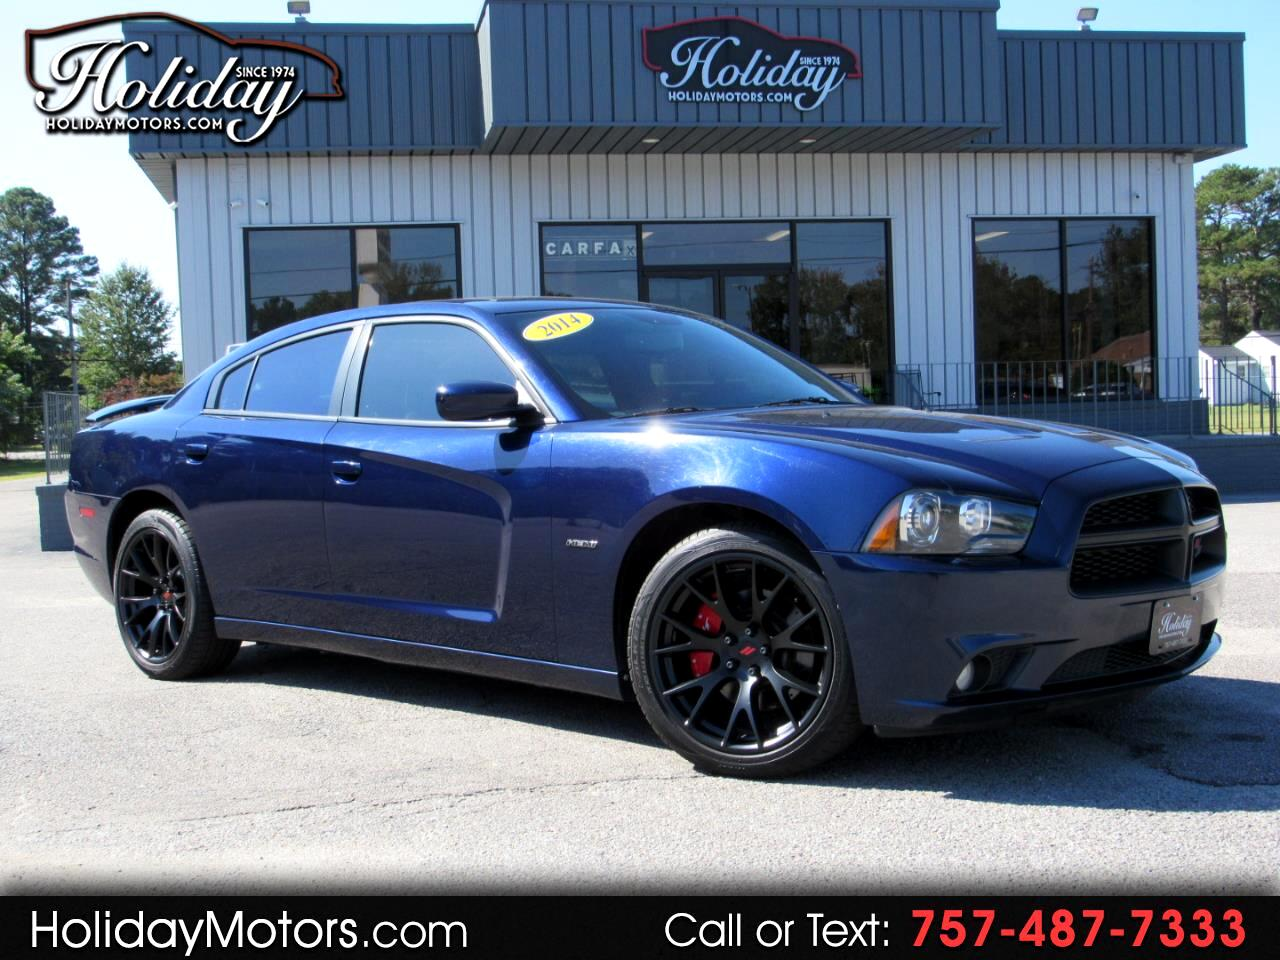 Dodge Charger 4dr Sdn Road/Track RWD 2014